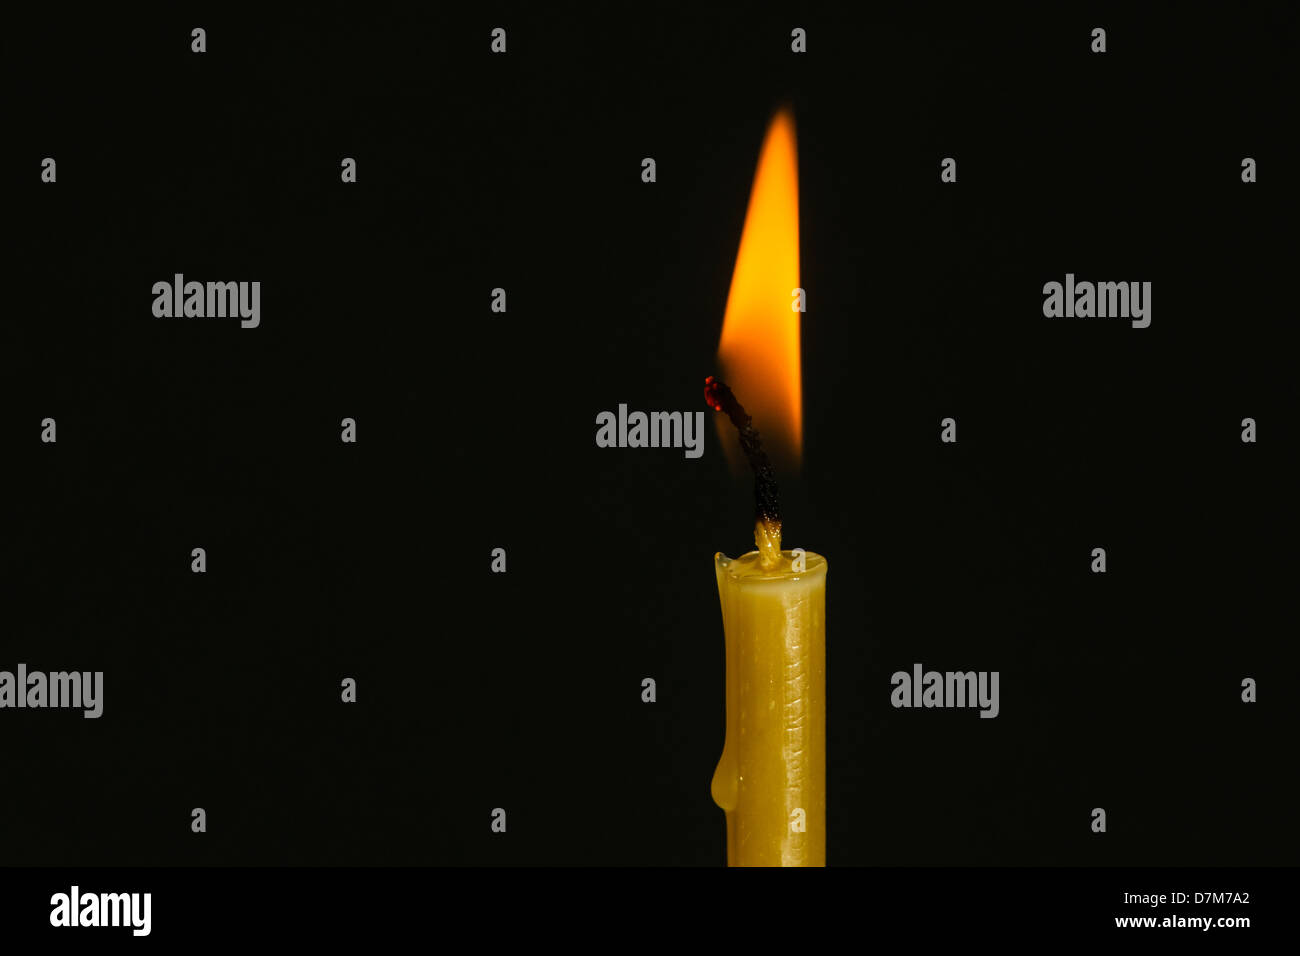 A closeup view of burning beeswax candle - Stock Image